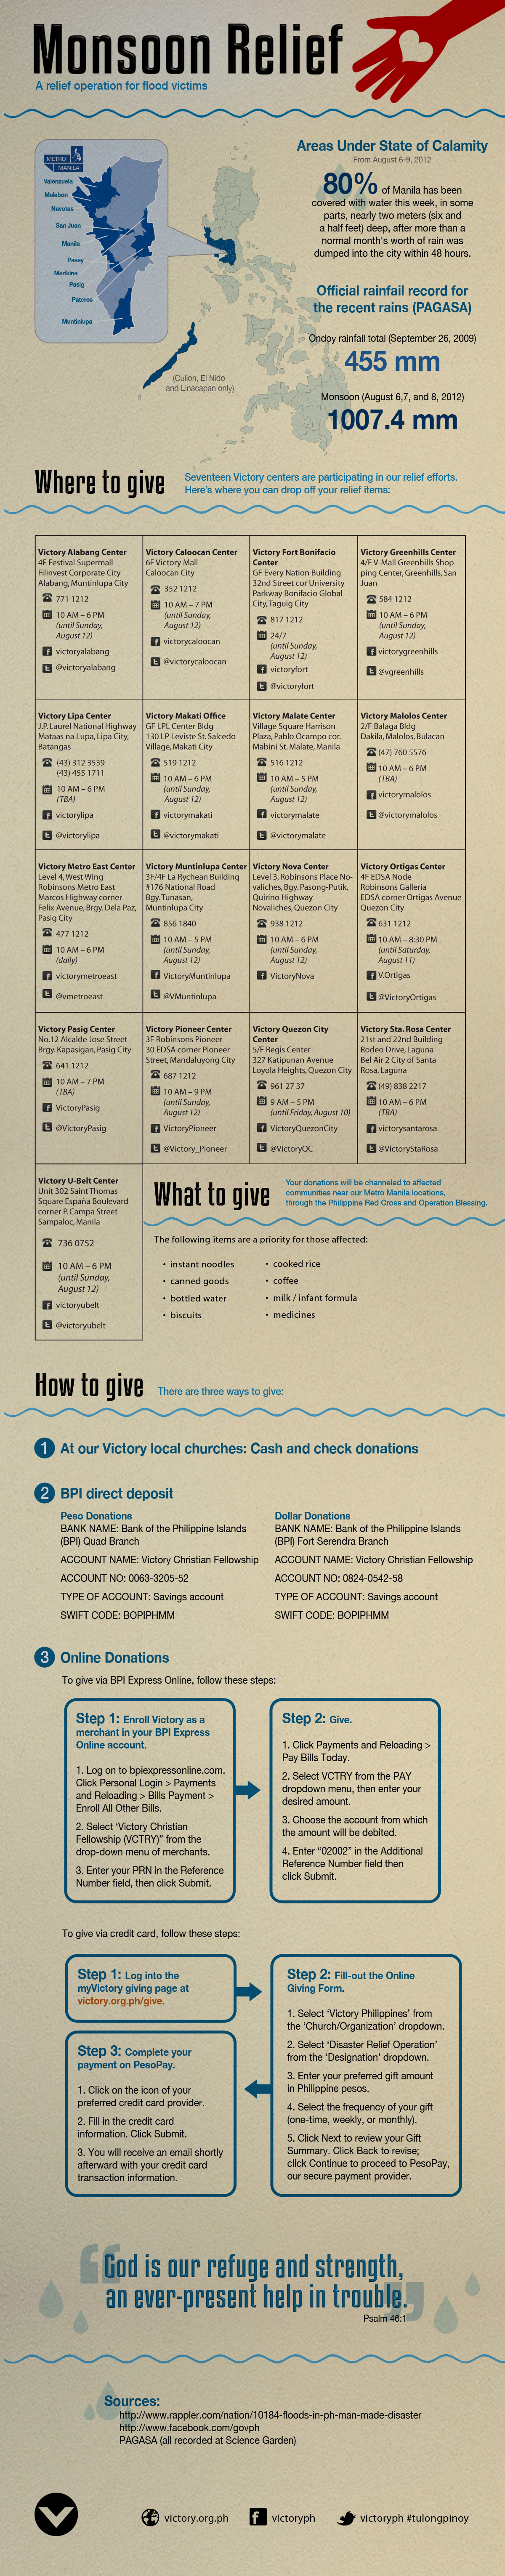 Monsoon Relief infographic